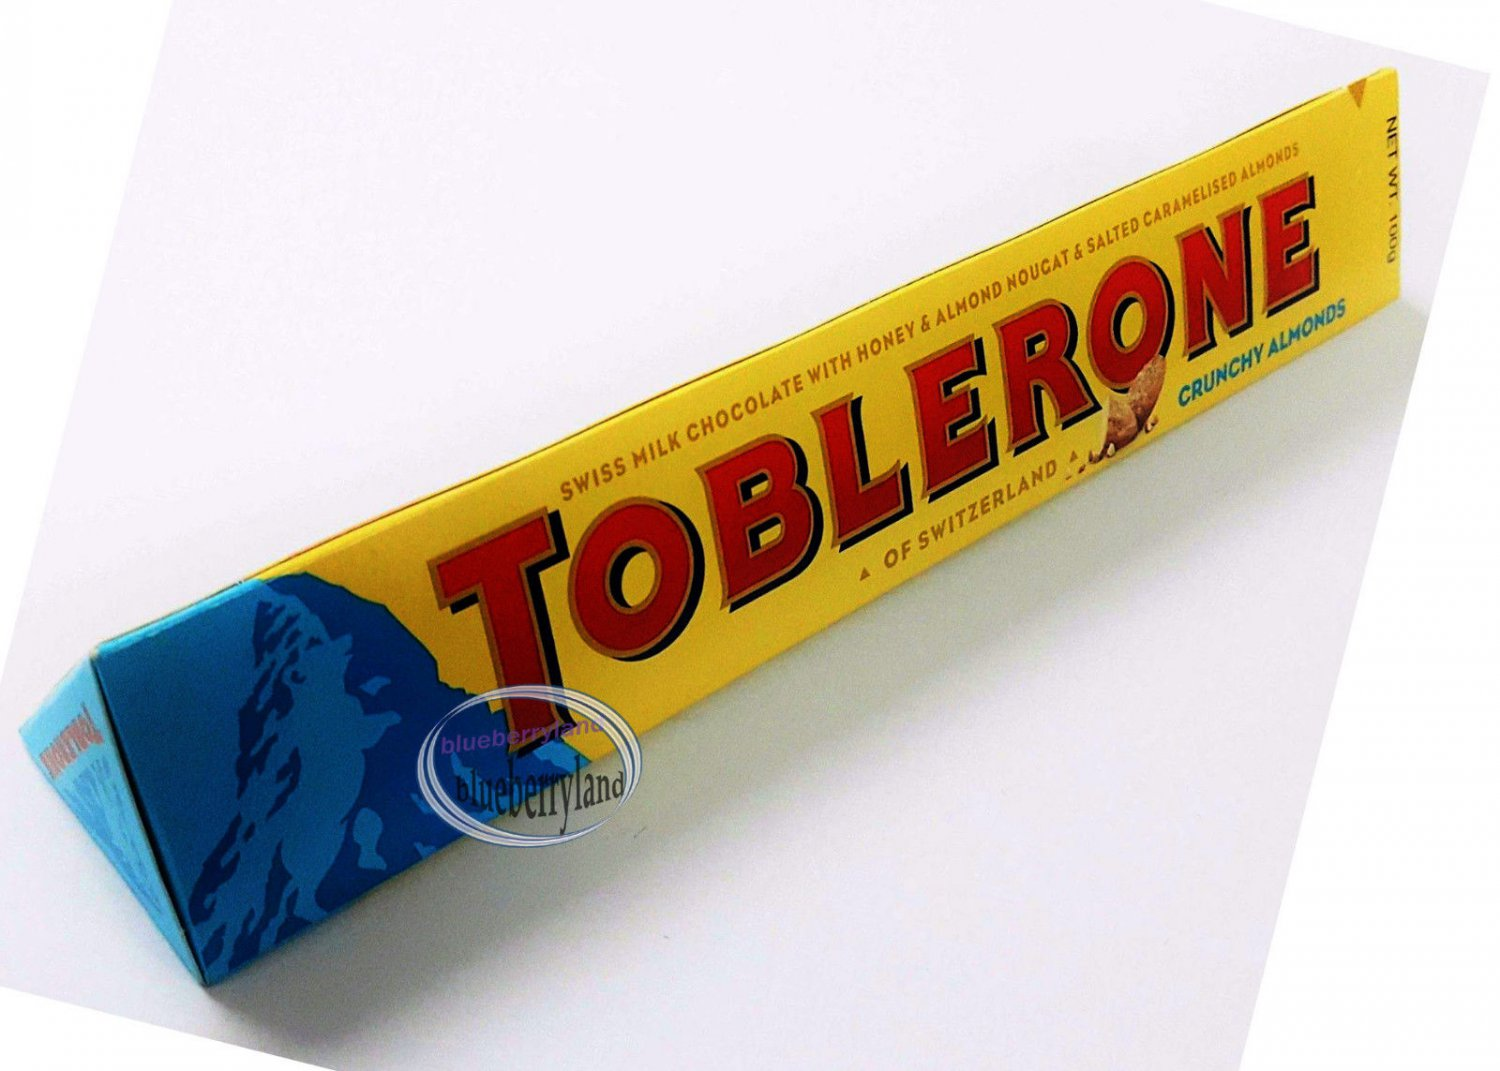 Toblerone Milk Chocolate with Crunchy Salted Caramelized ...